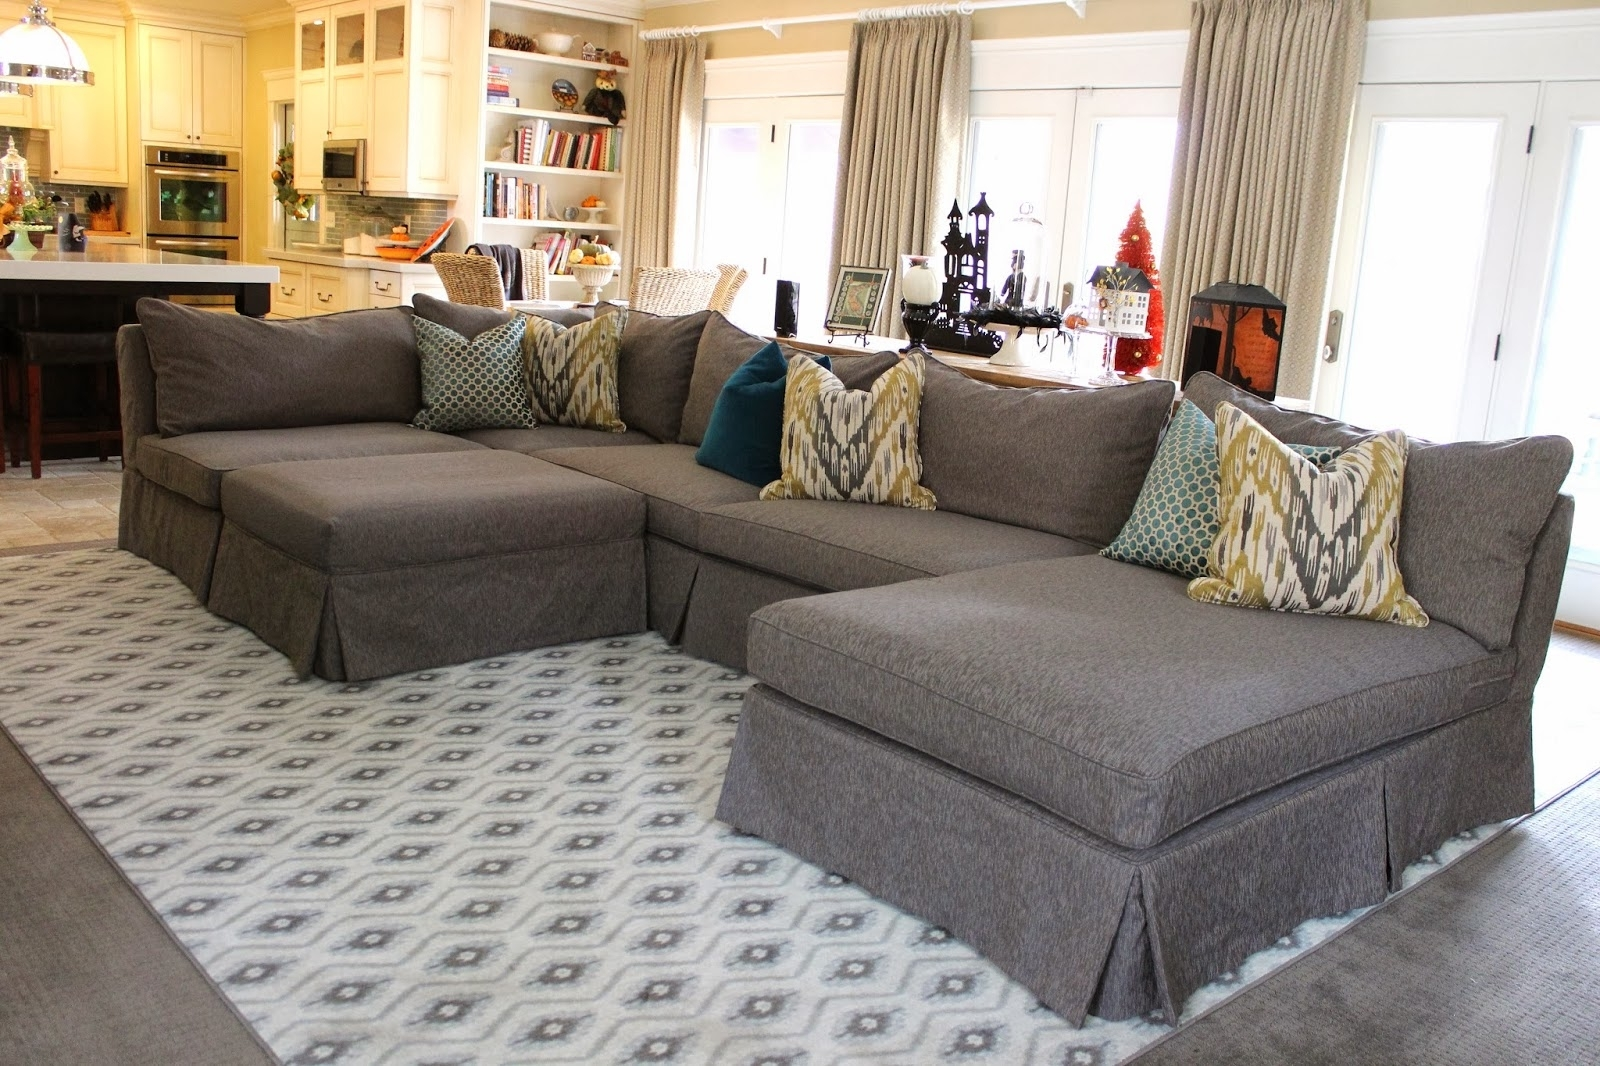 Grey Sectional From Slipcovered Sectional Sofa Pottery Barn For Popular Slipcovered Sofas With Chaise (View 5 of 15)